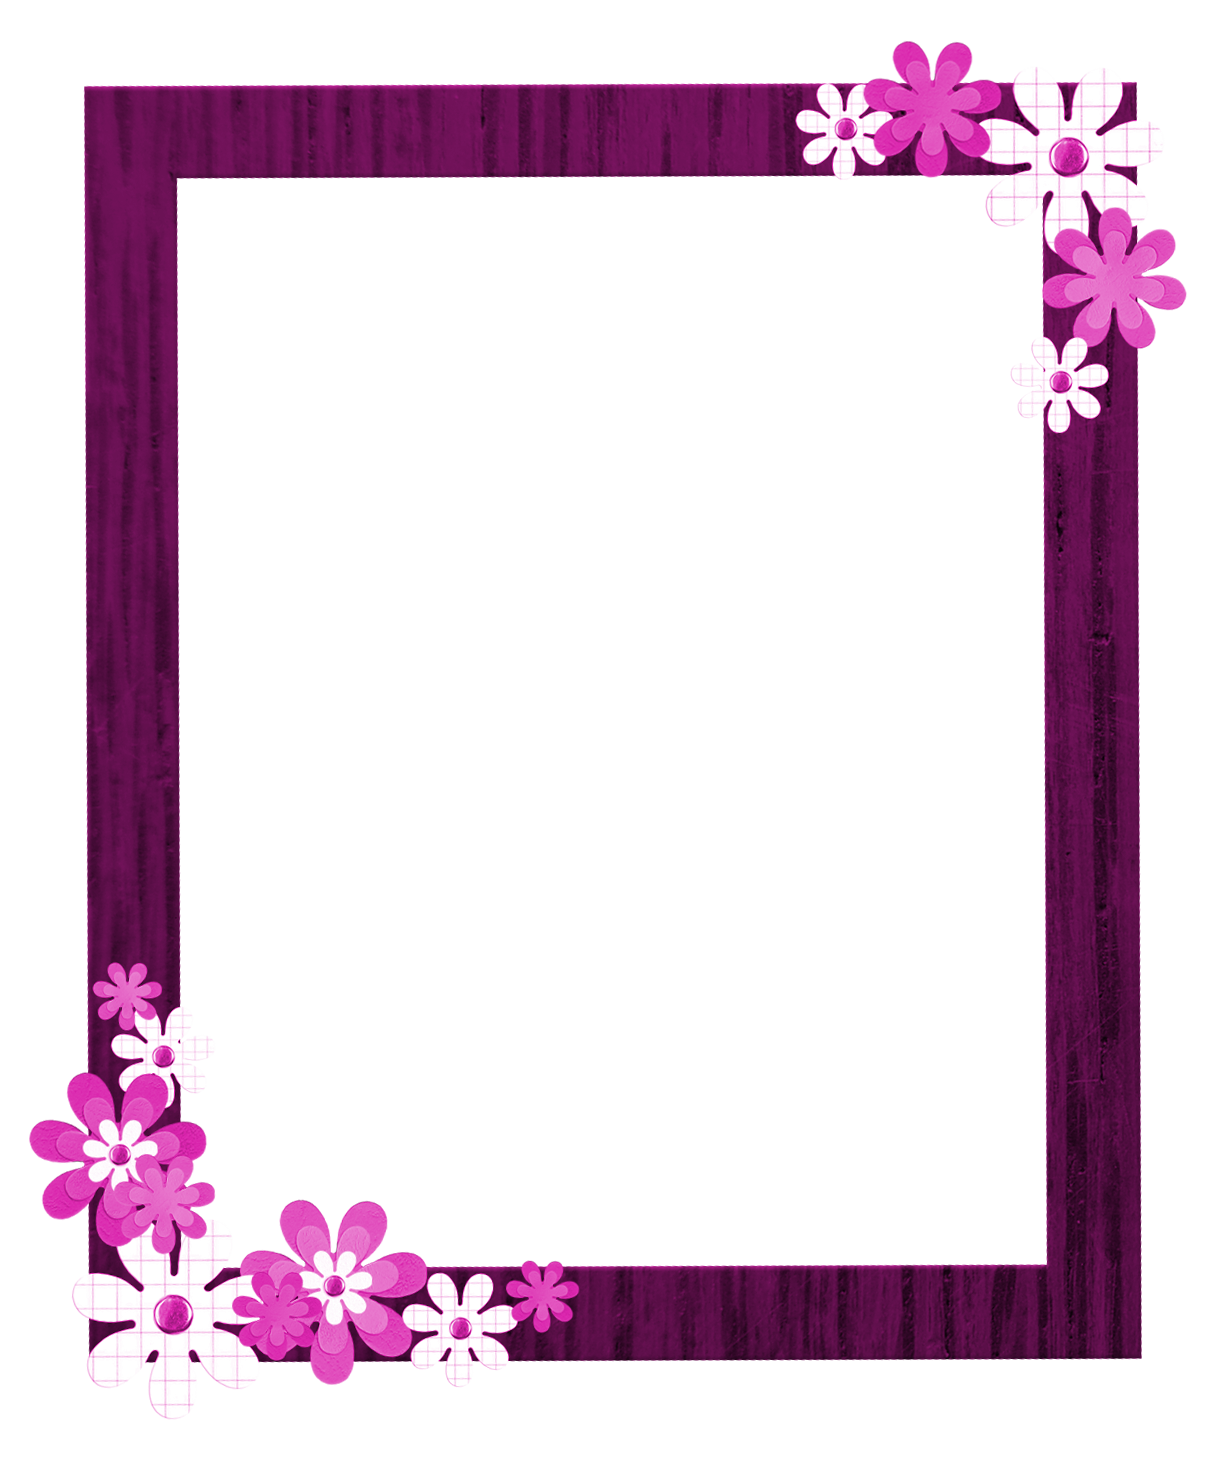 Border png. Pink floral picture vector